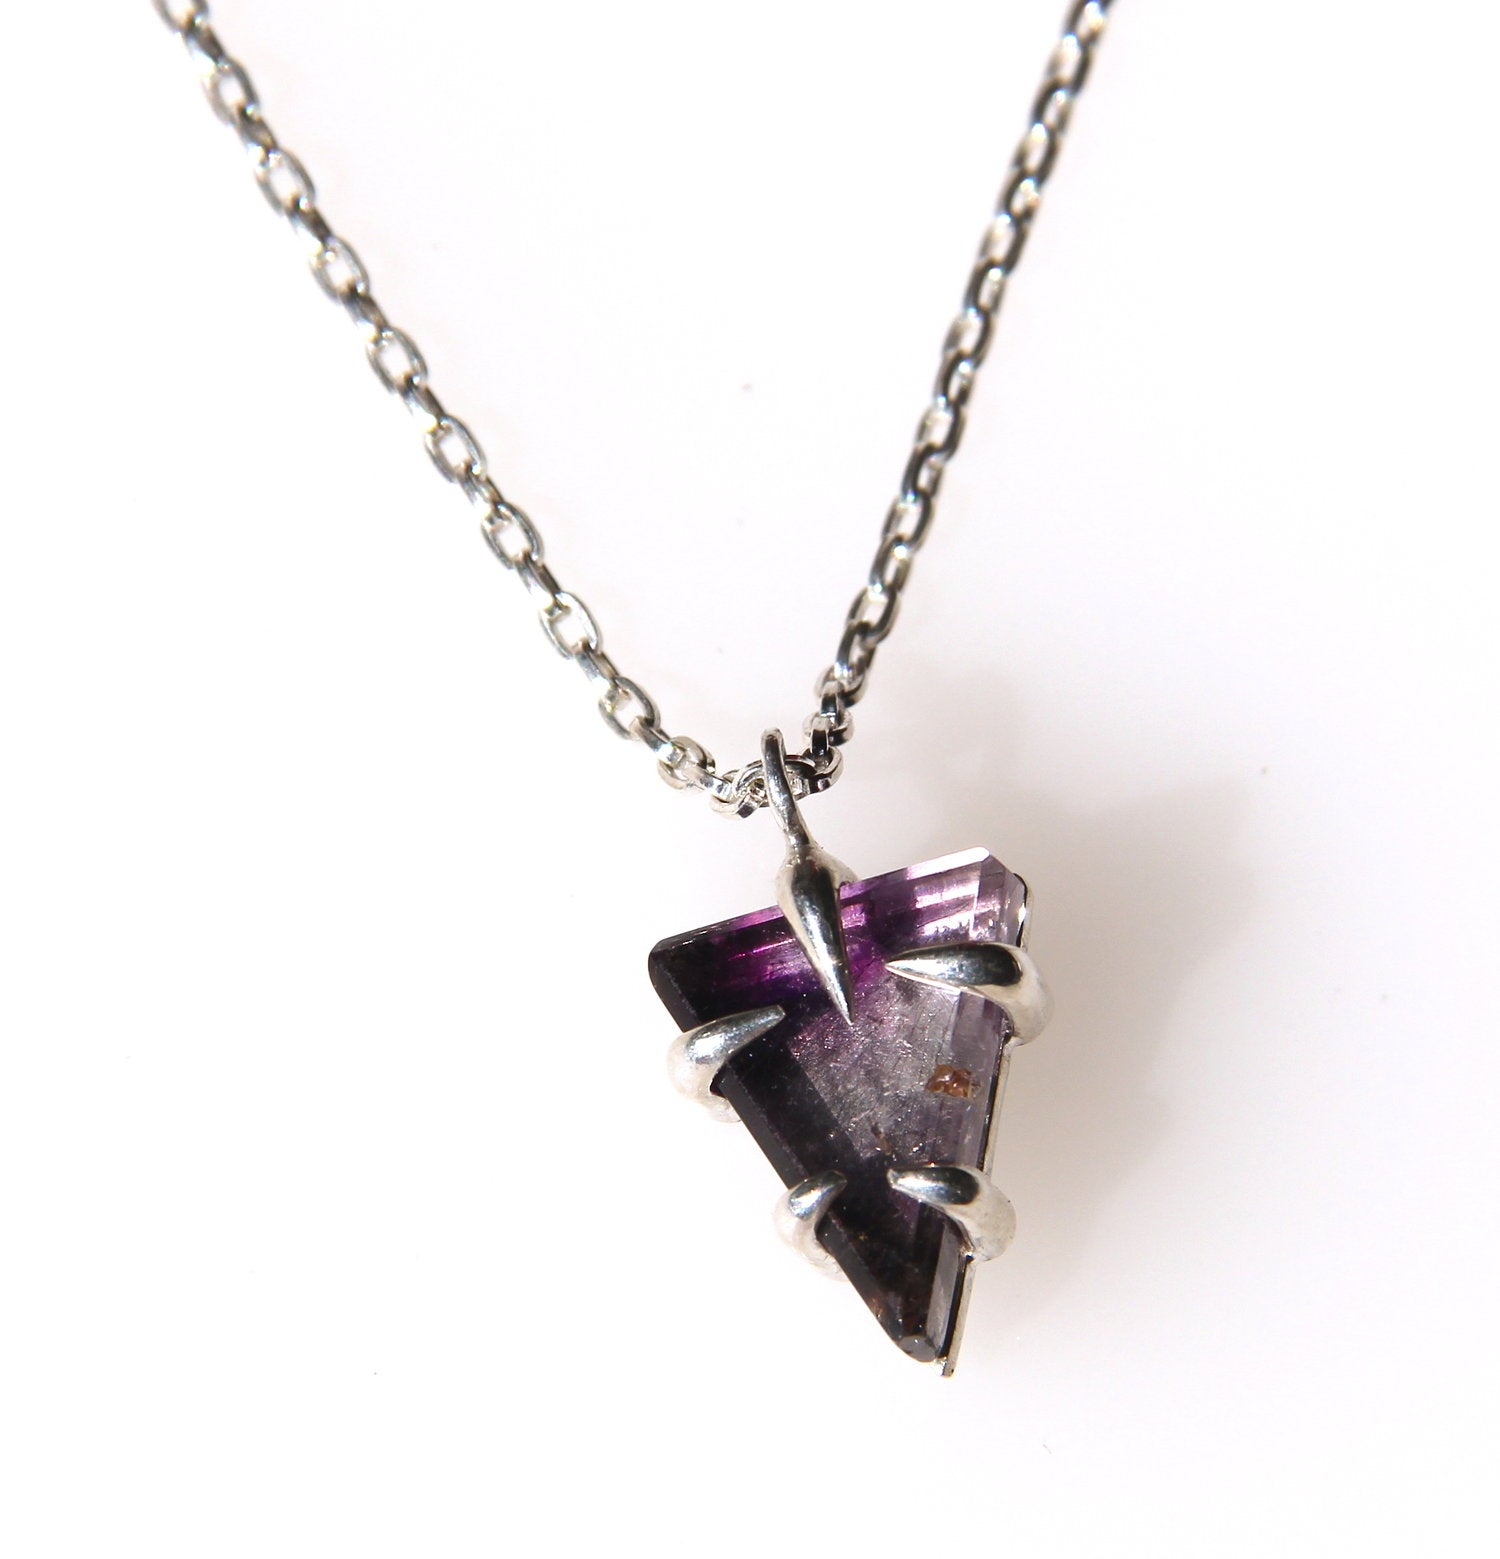 5-prong Super Seven Necklace